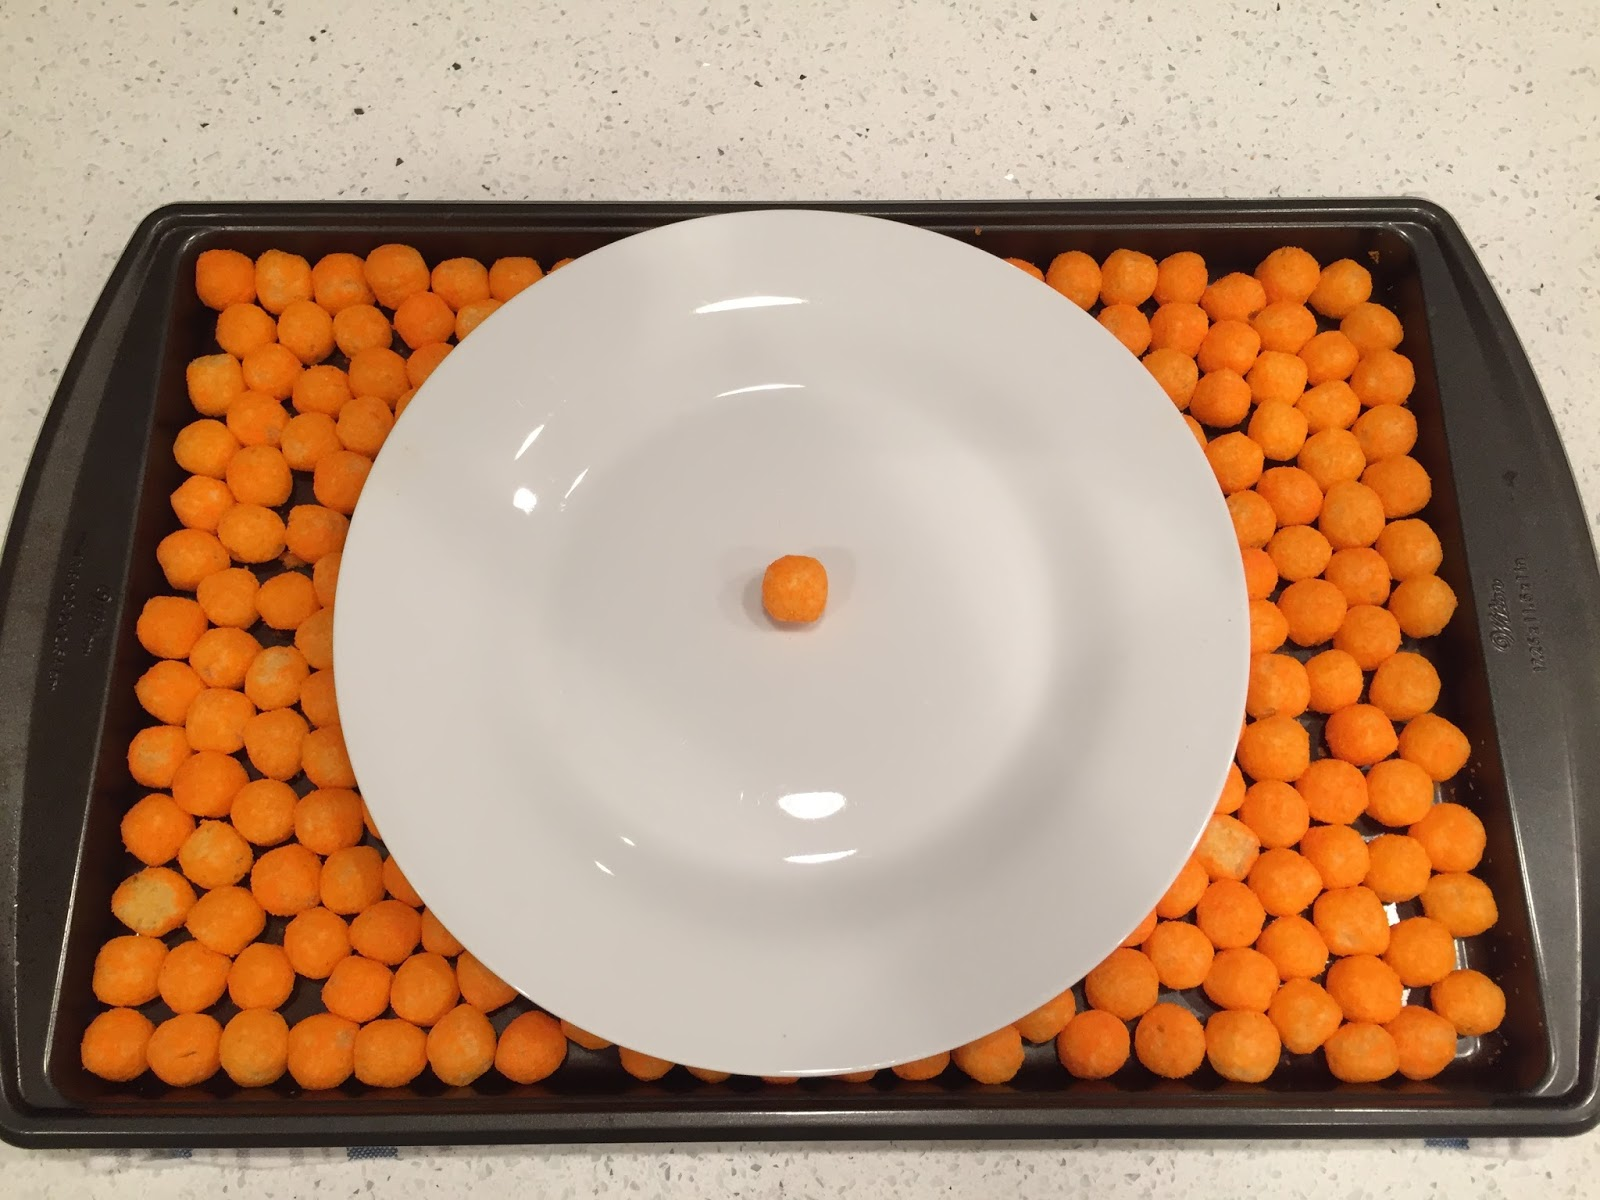 Cheeseball Estimation 180. Earlier this week I tweeted out a new Estimation 180 challenge How many cheeseballs will cover the plate? & Divisible by 3 [Andrew Stadel]: Cheeseball Estimation 180